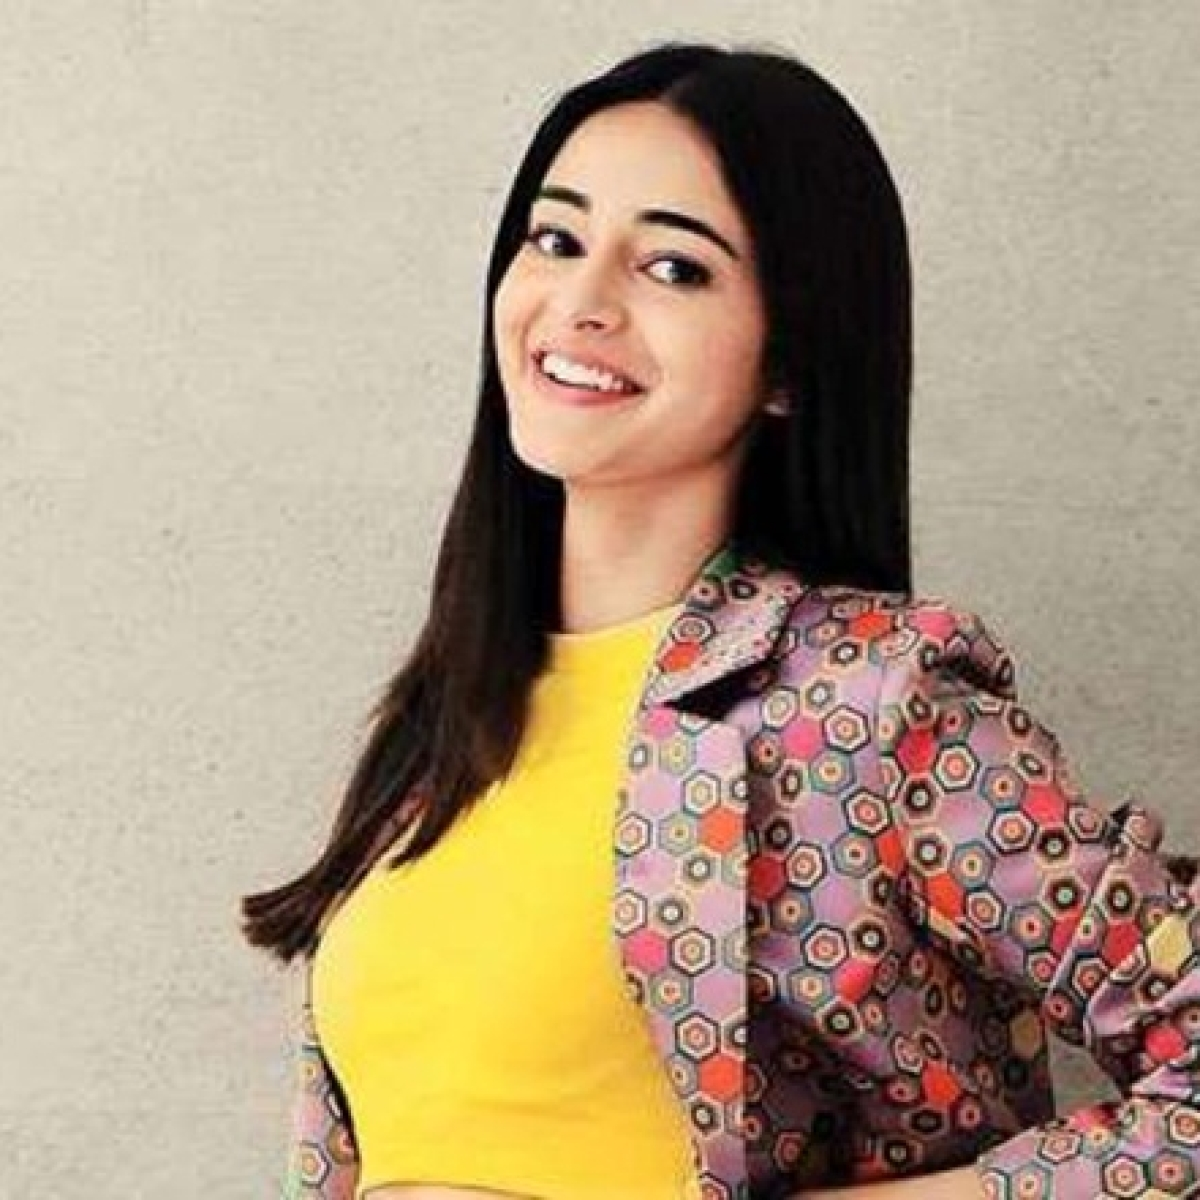 Cyberbullying is hurtful to youngsters: Ananya Panday